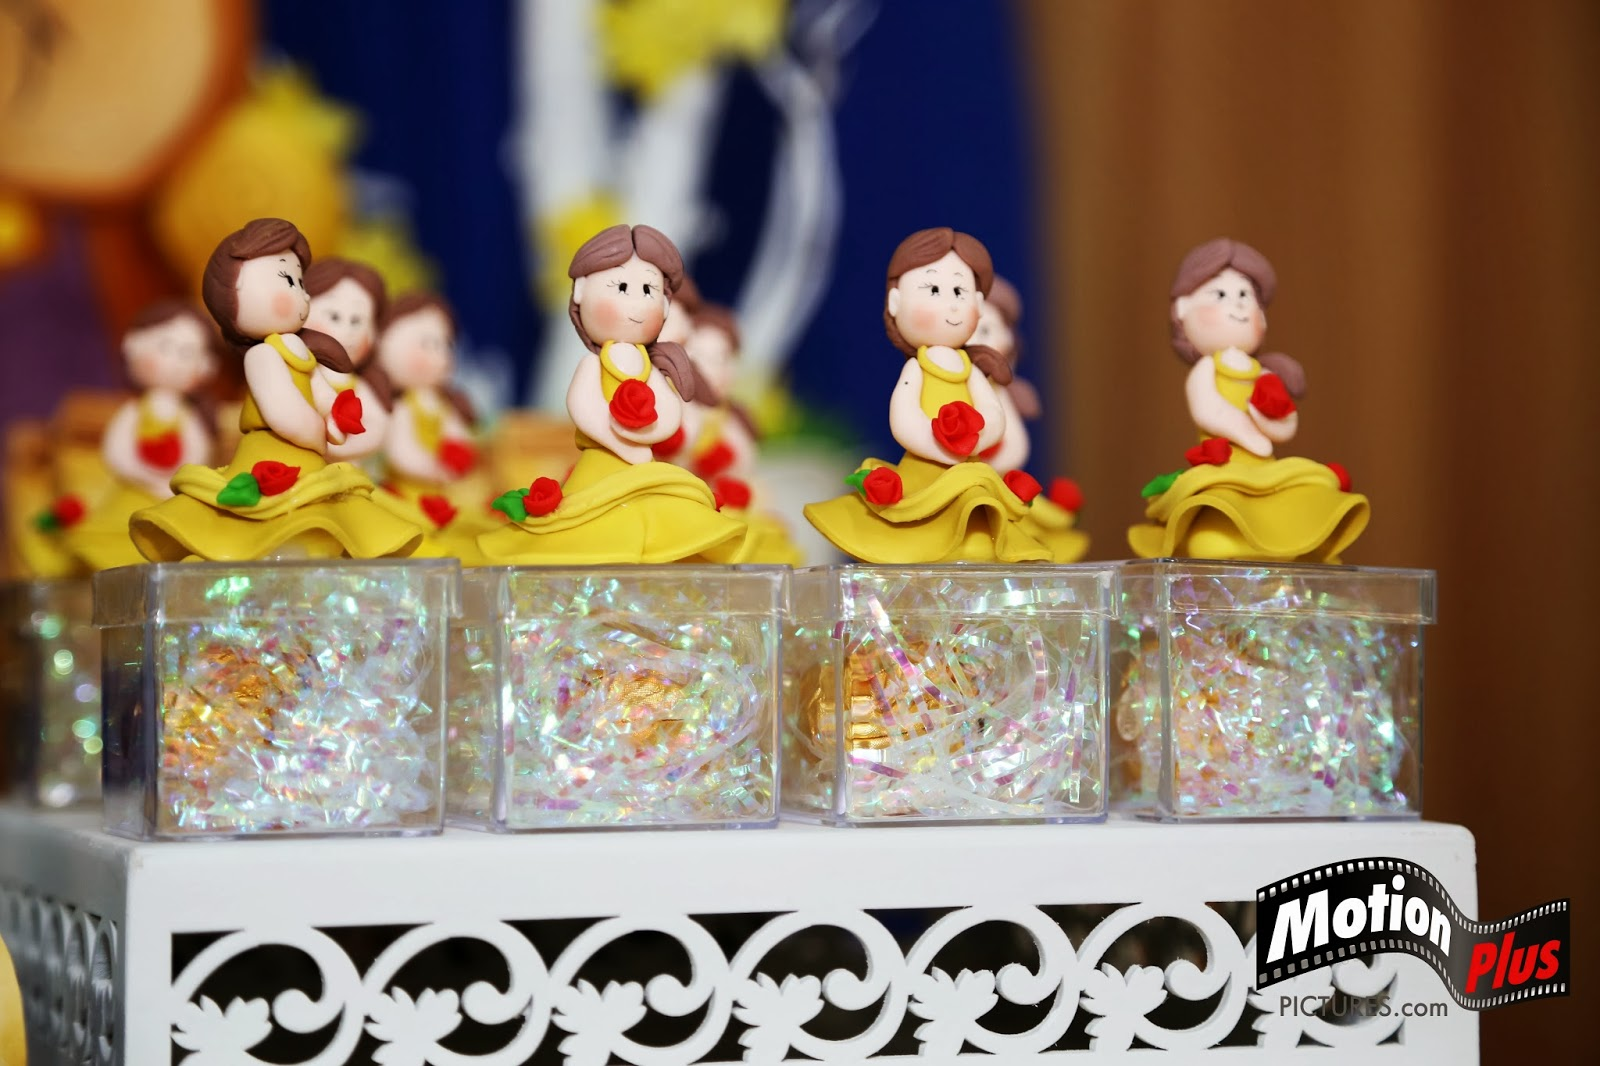 Motion Plus Pictures The Beauty And The Beast Themed